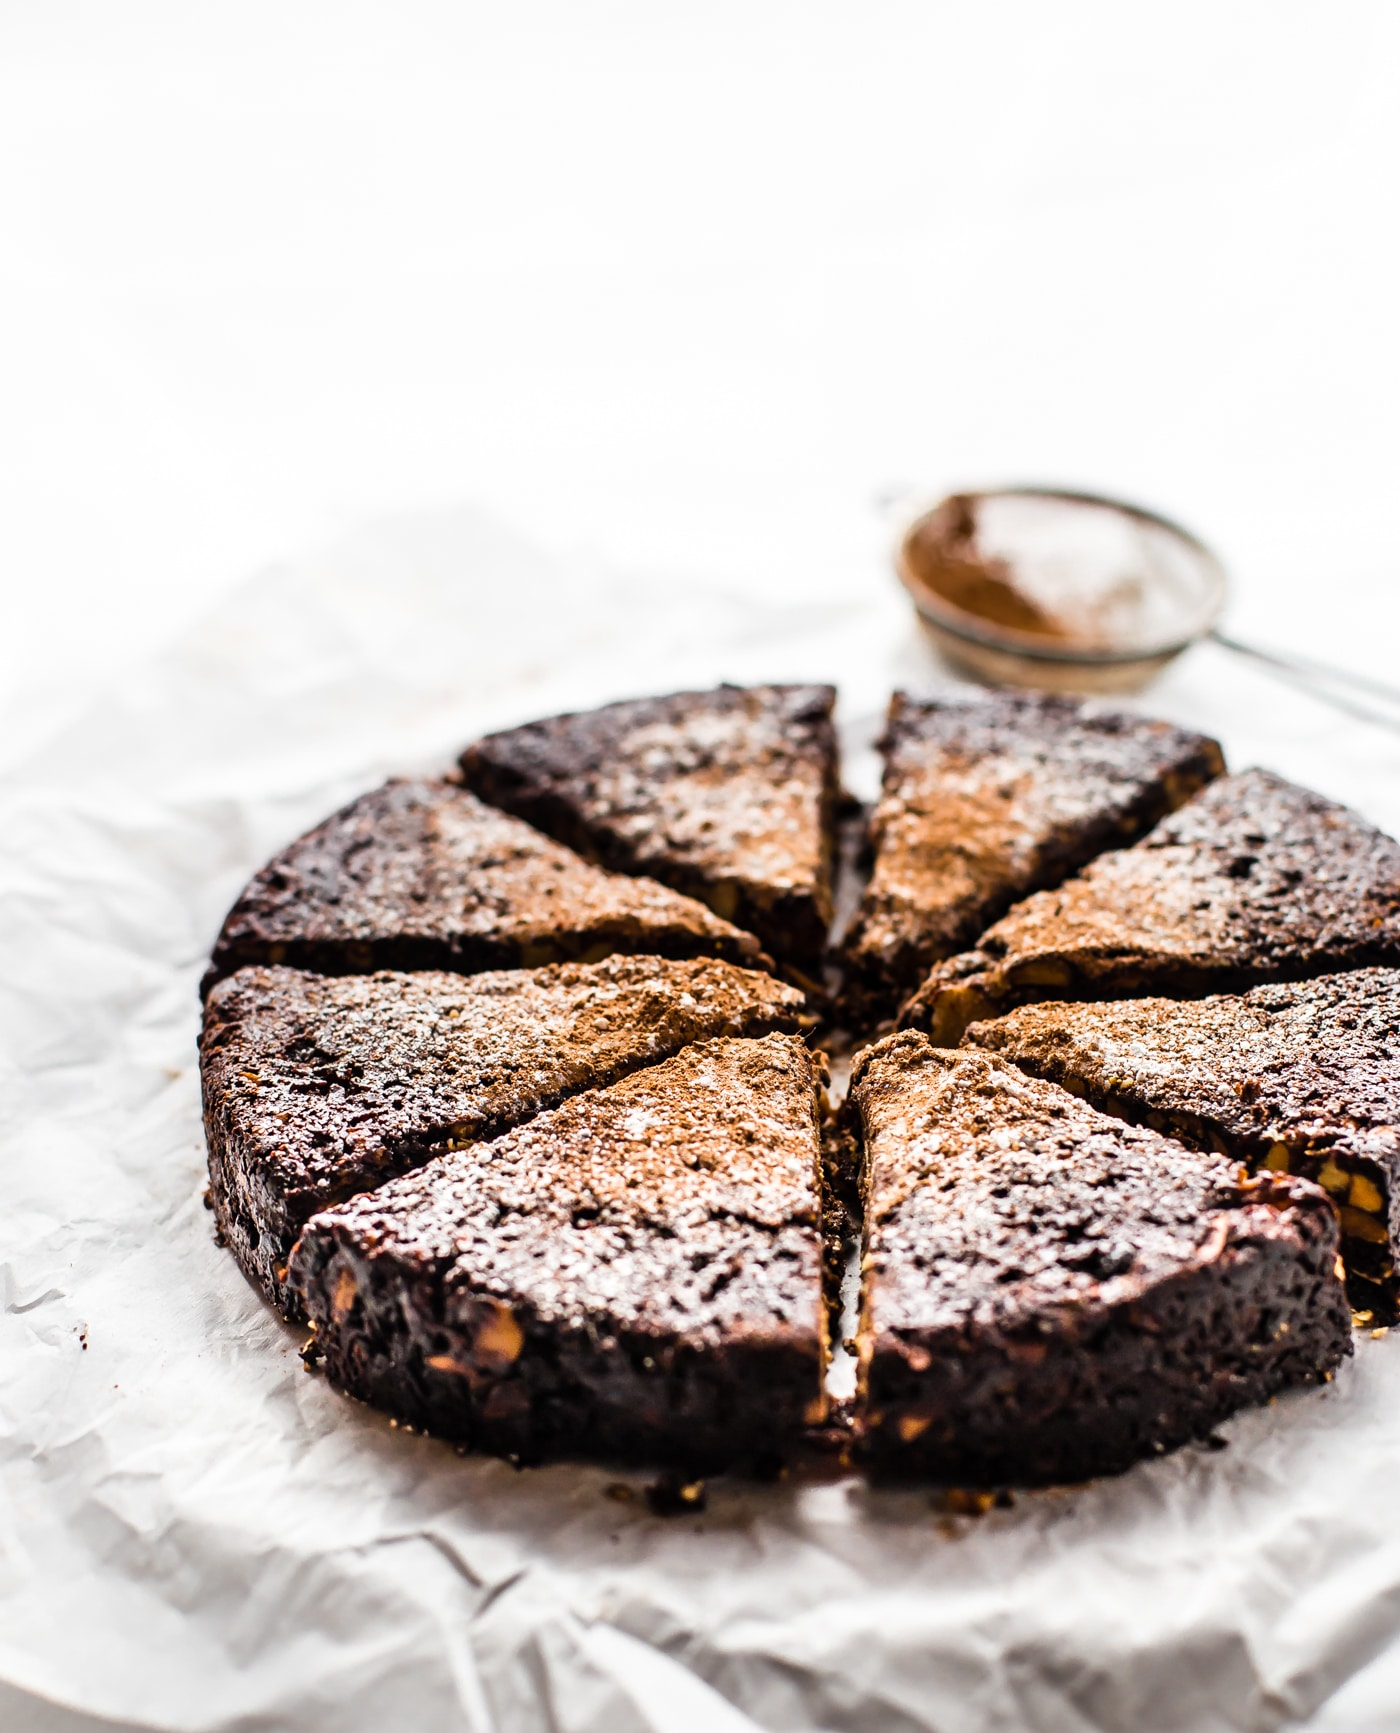 Vegan No Sugar Chocolate Cake